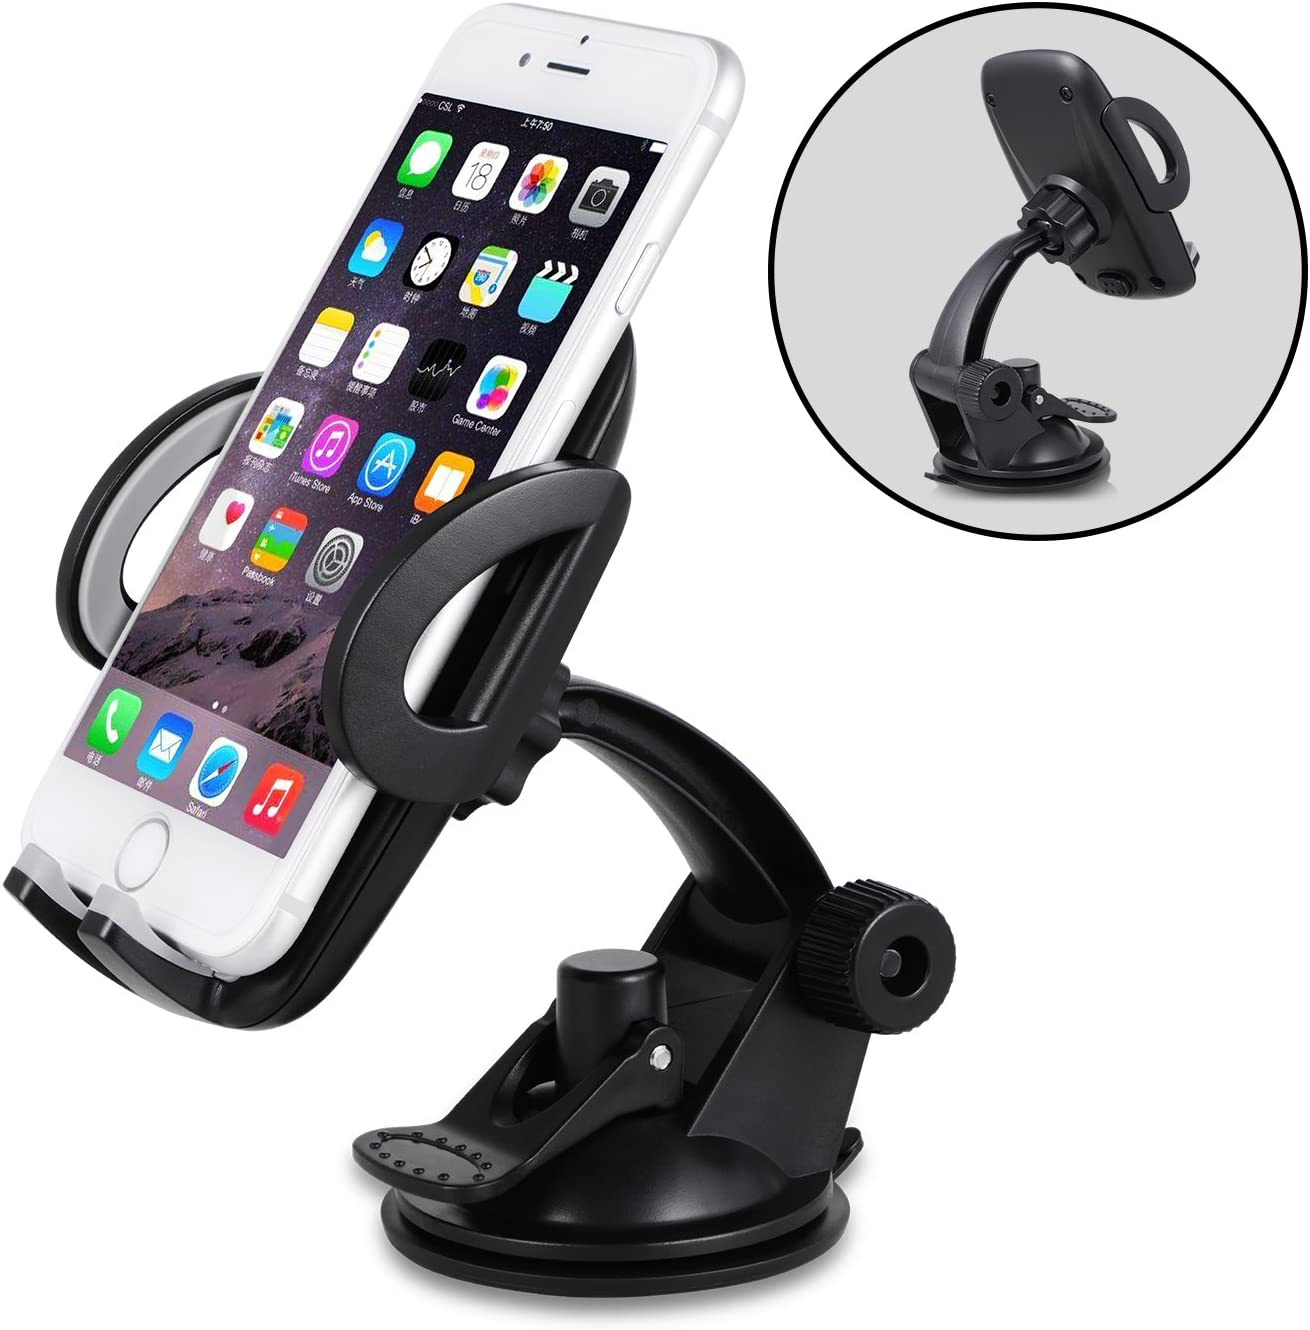 Amoner Car Phone Holder Dashboard Phone Holder for Car Car Phone Mount Washable Strong Sticky Gel Pad Compatible iPhone 11 pro,11 pro max,X,XS,XR,8,7,6 Plus,Galaxy S20,10,9,8,Google Nexus